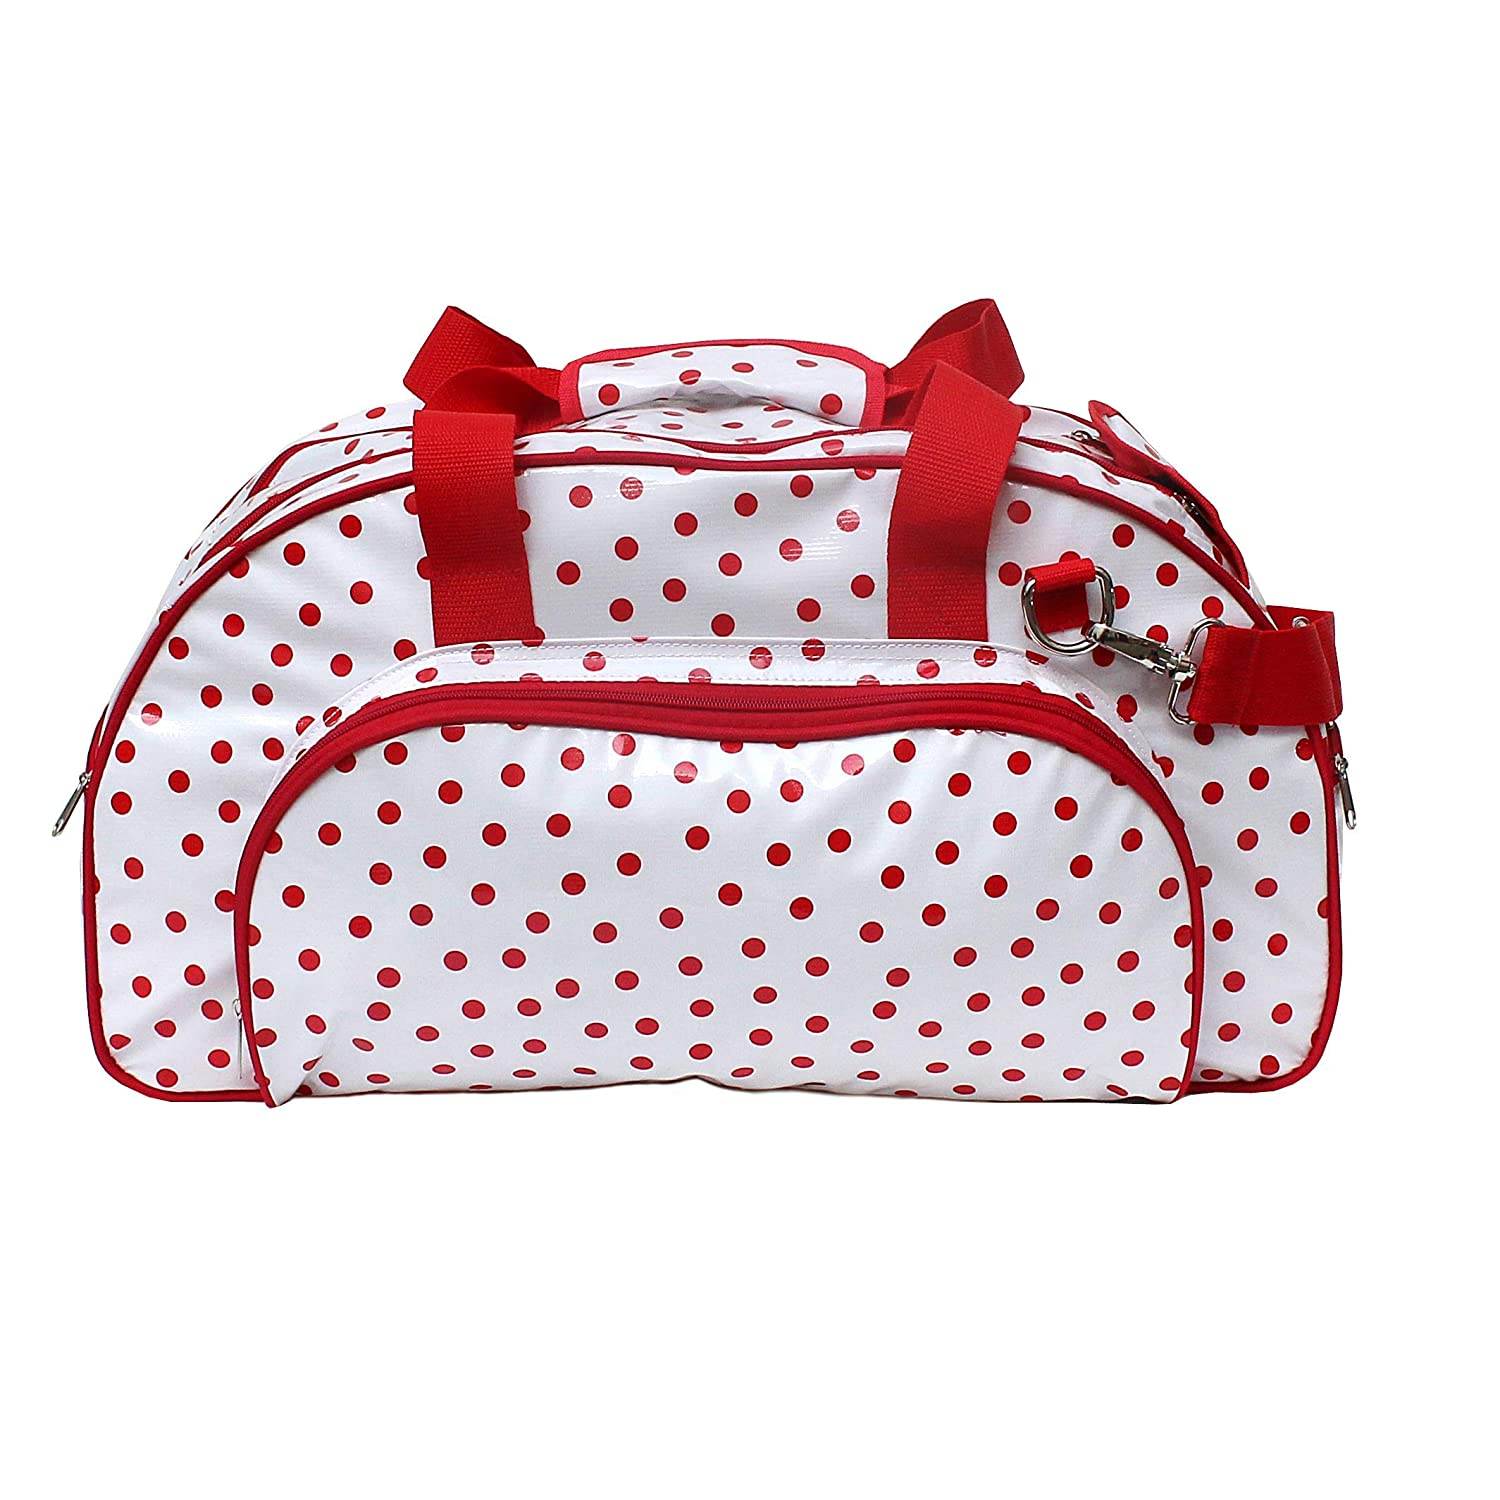 IKURI Weekender Bag For Woman Waterproof Duffel Bag for Ladies Overnight Water-Resistant Travel Bag Handmade Compact Tote Bag Carry-On Design Lunares red-white